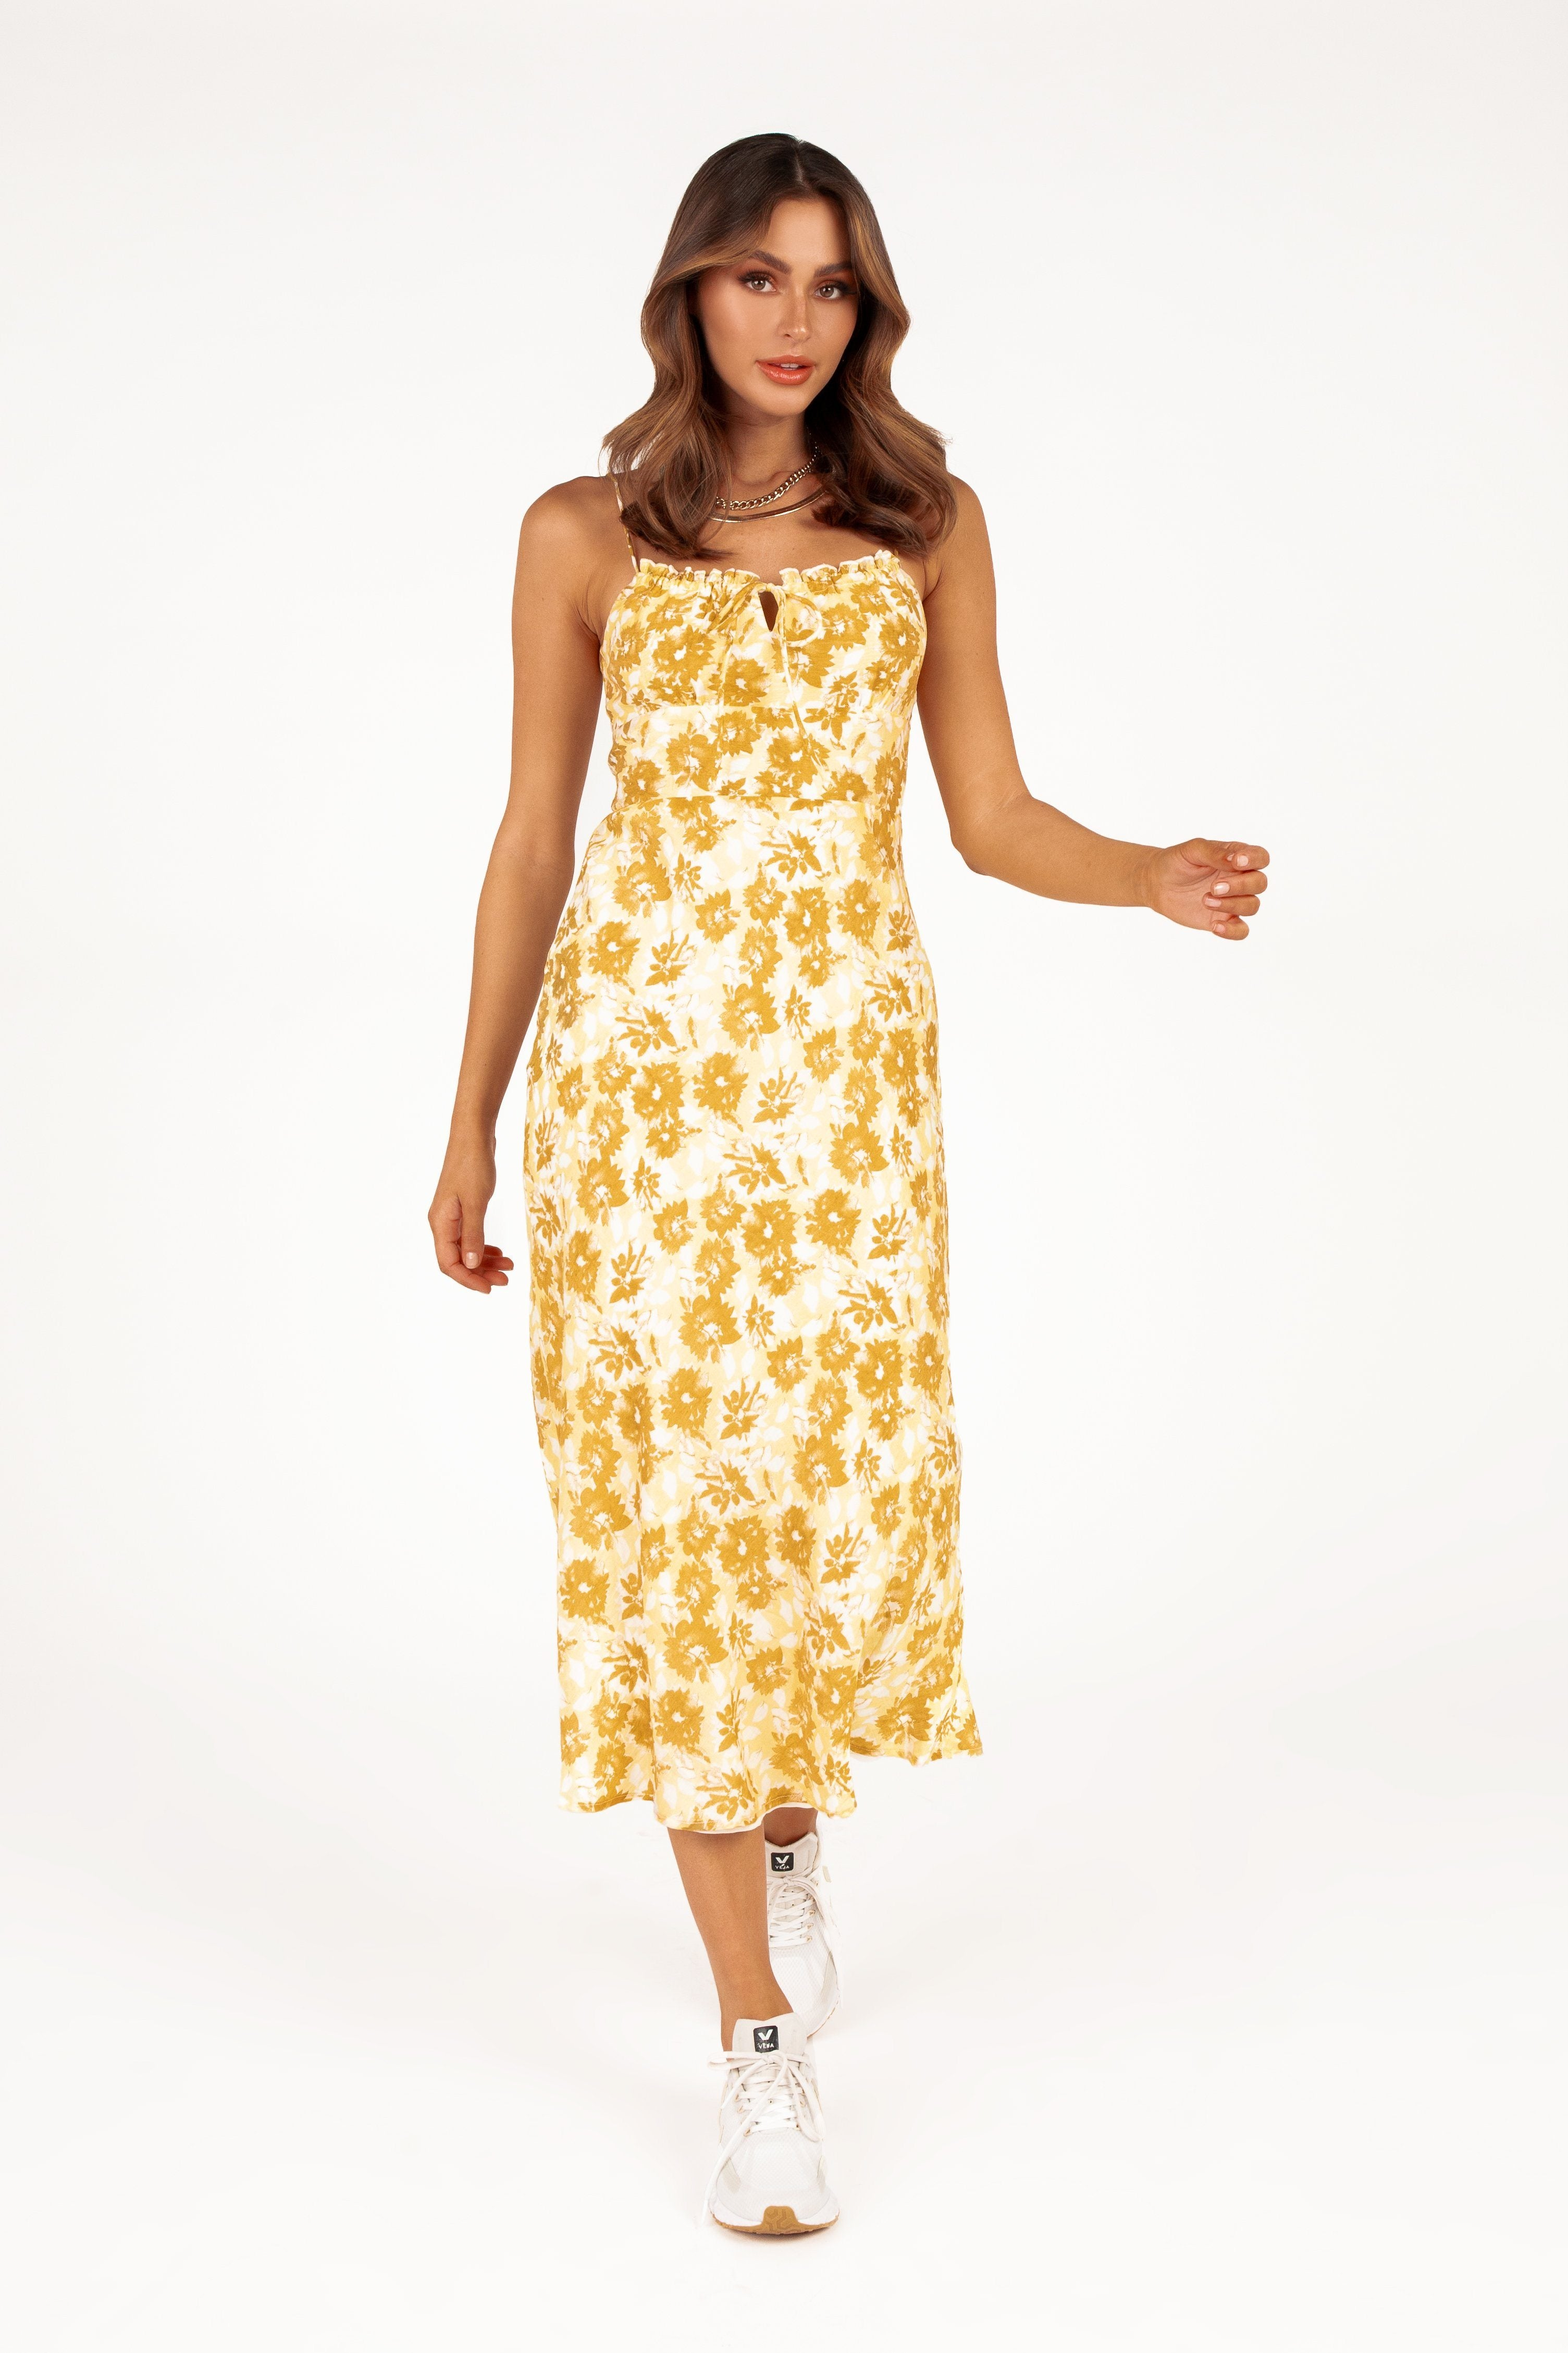 DIONNE YELLOW FLORAL MIDI DRESS Clothing DISSH EXCLUSIVE 12 YELLOW